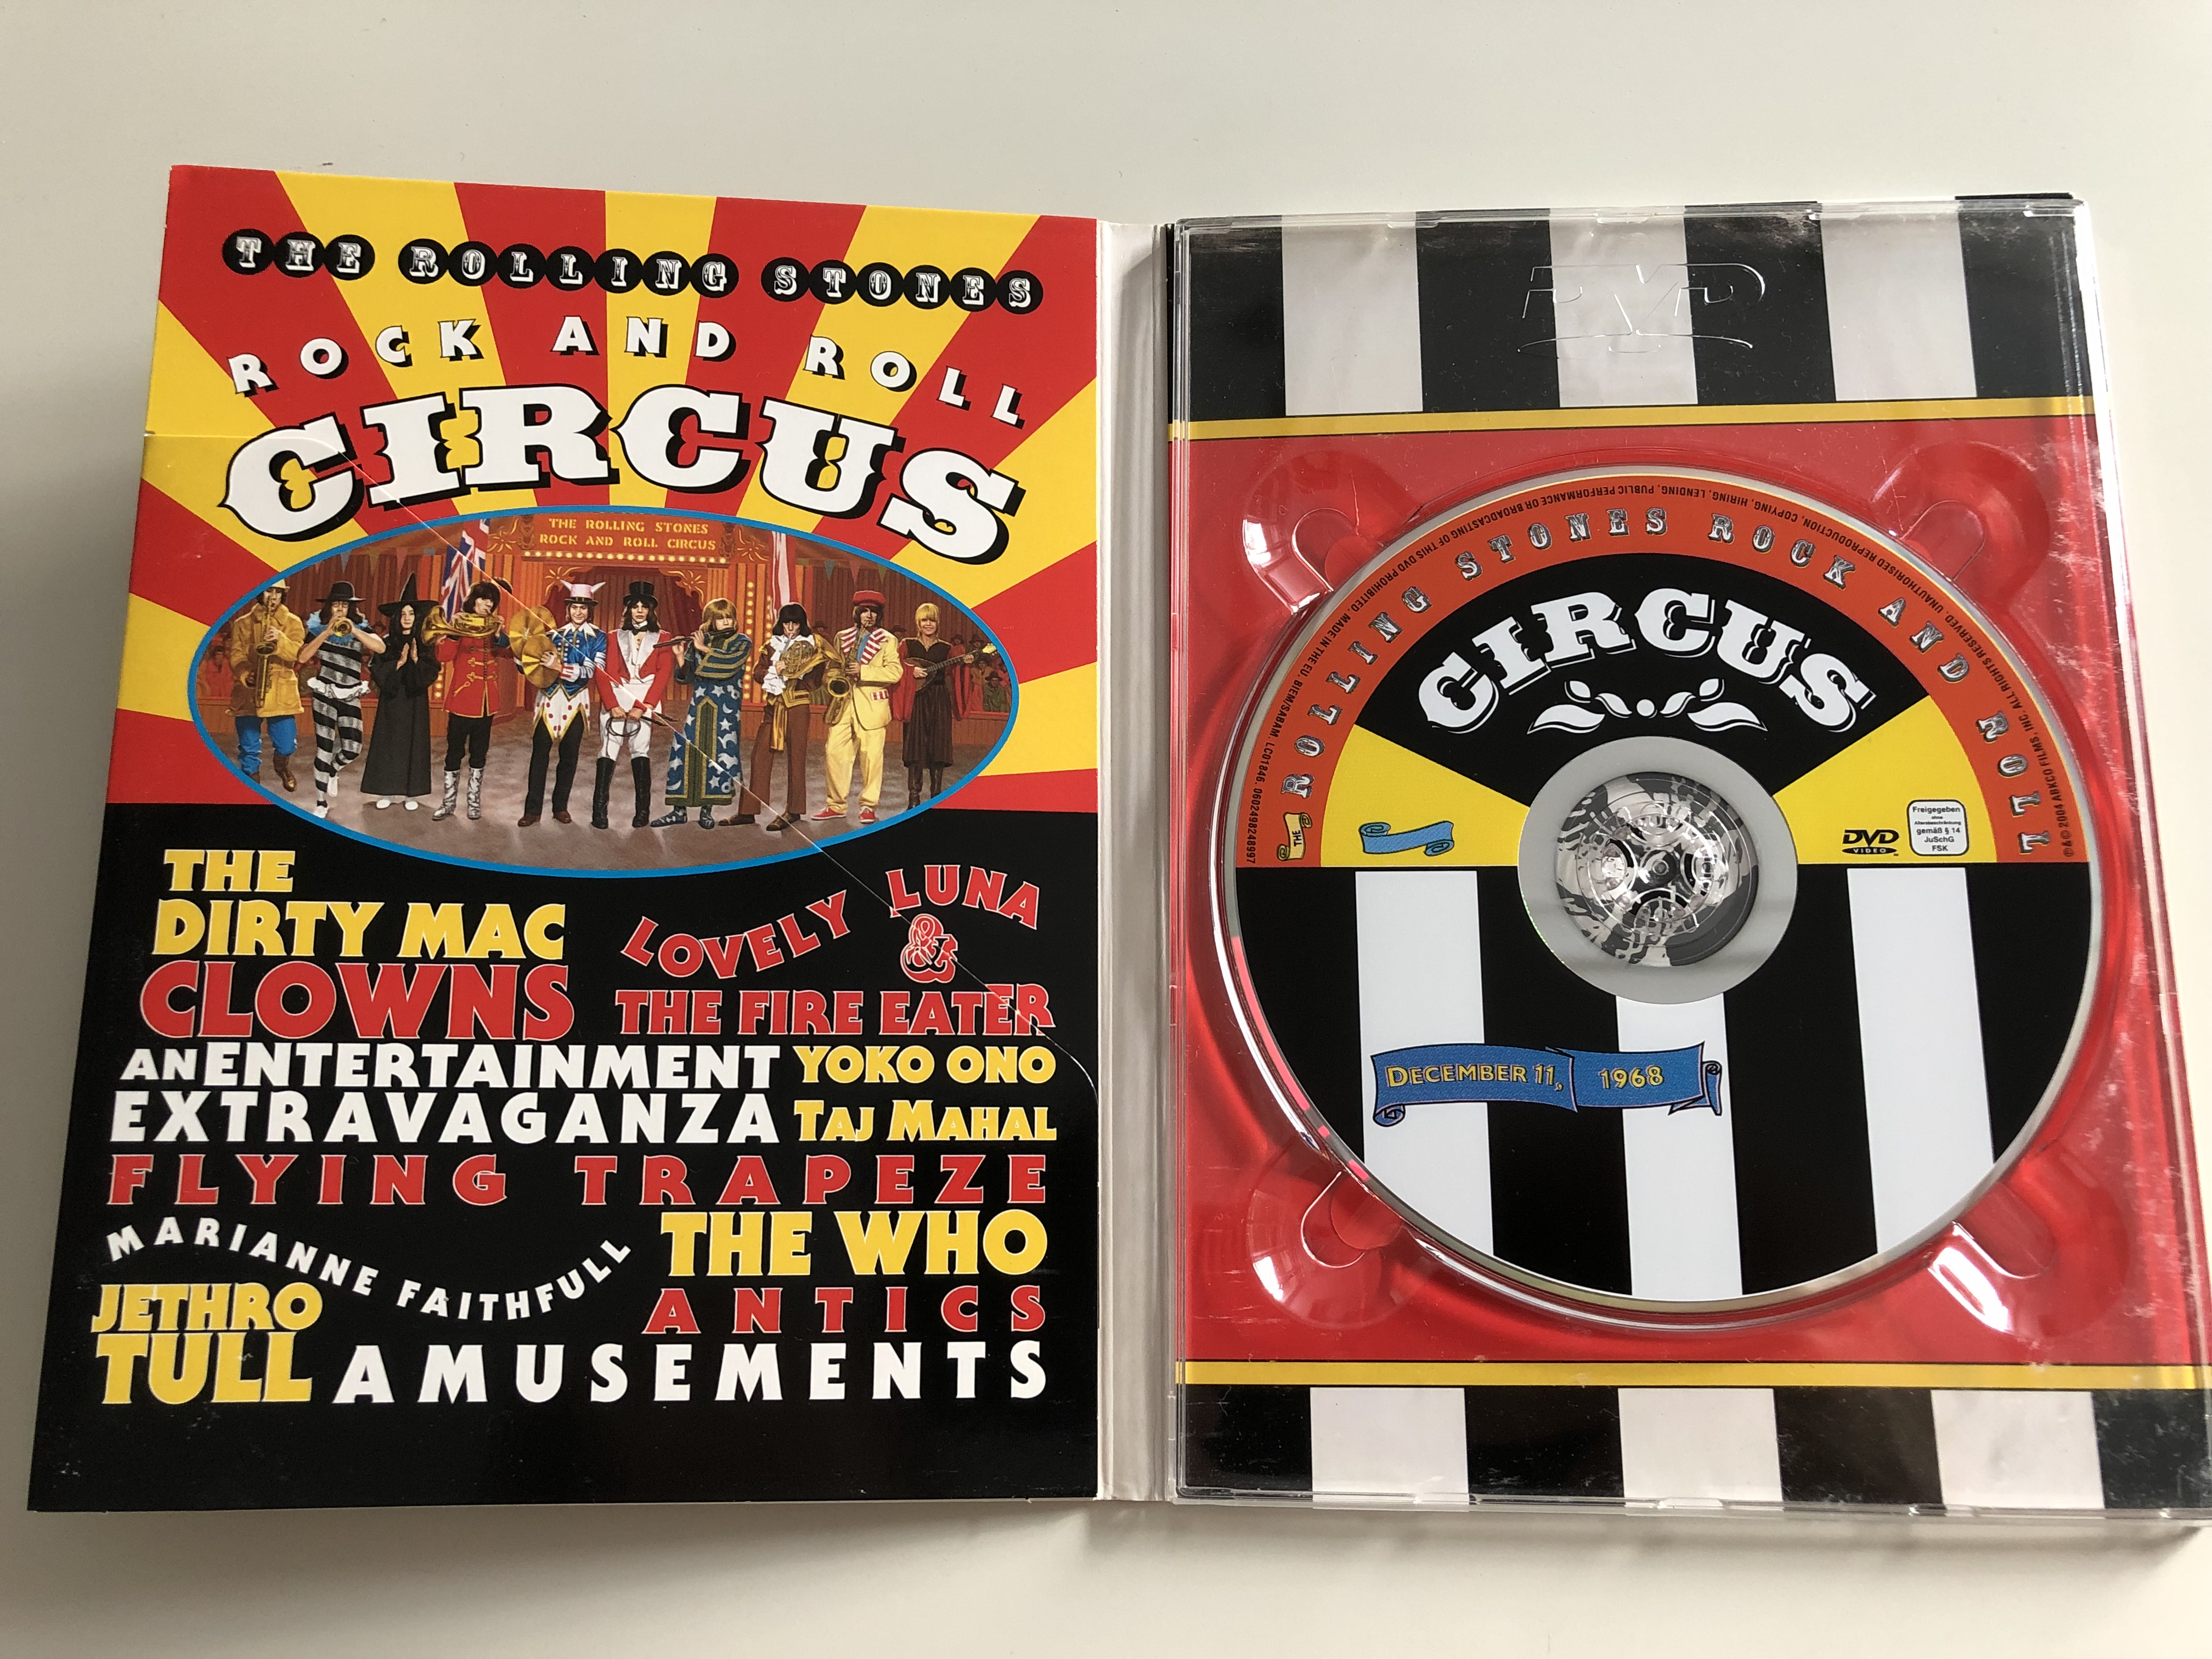 the-rolling-stones-rock-and-roll-circus-dvd-1968-directed-by-michael-lindsay-hogg-jethro-tull-the-who-the-dirty-mac-2-.jpg